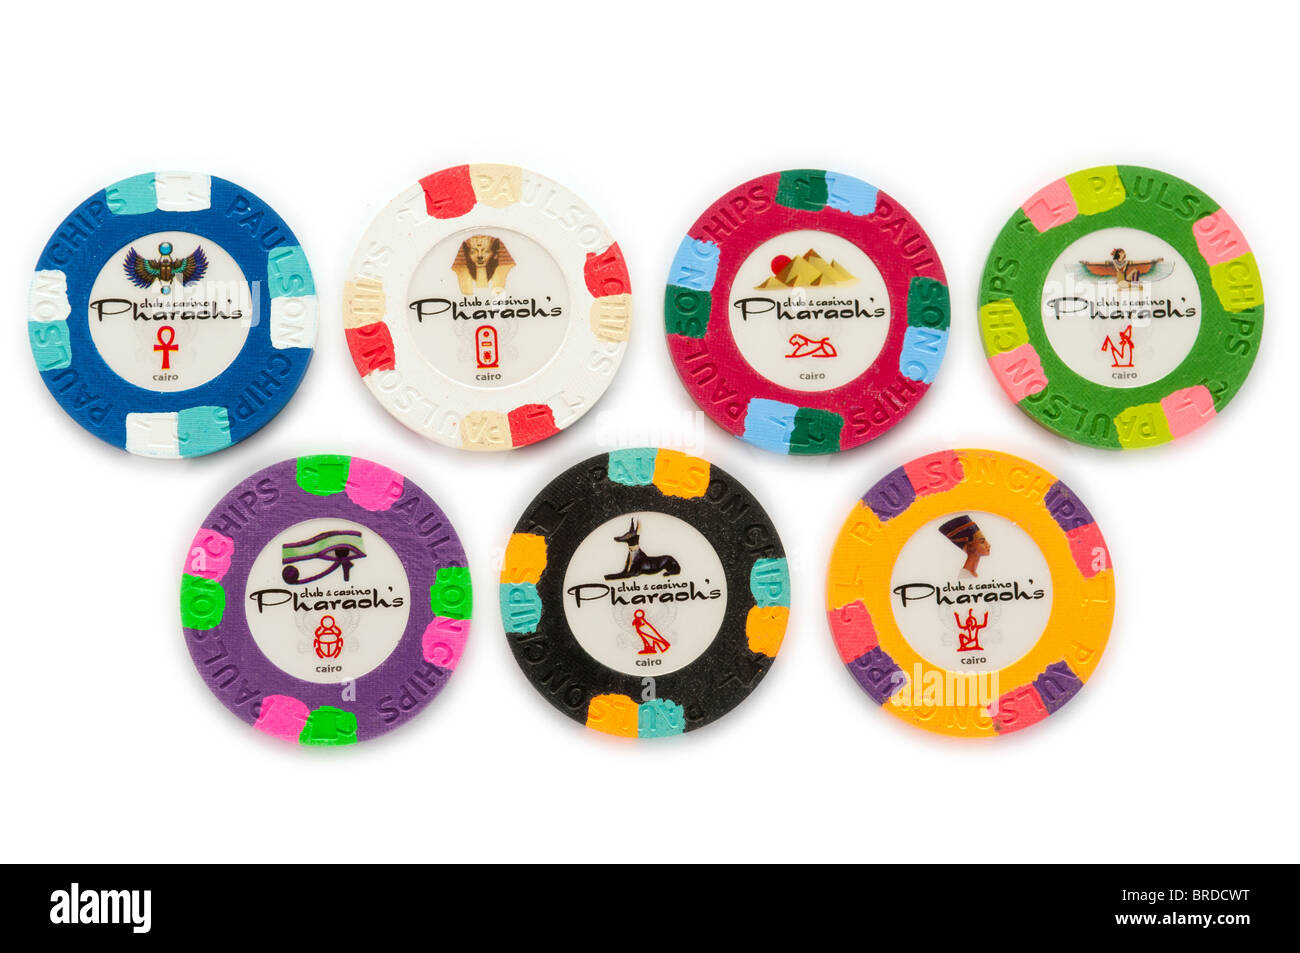 Clay poker chips manufactured by Paulson with imaginary \